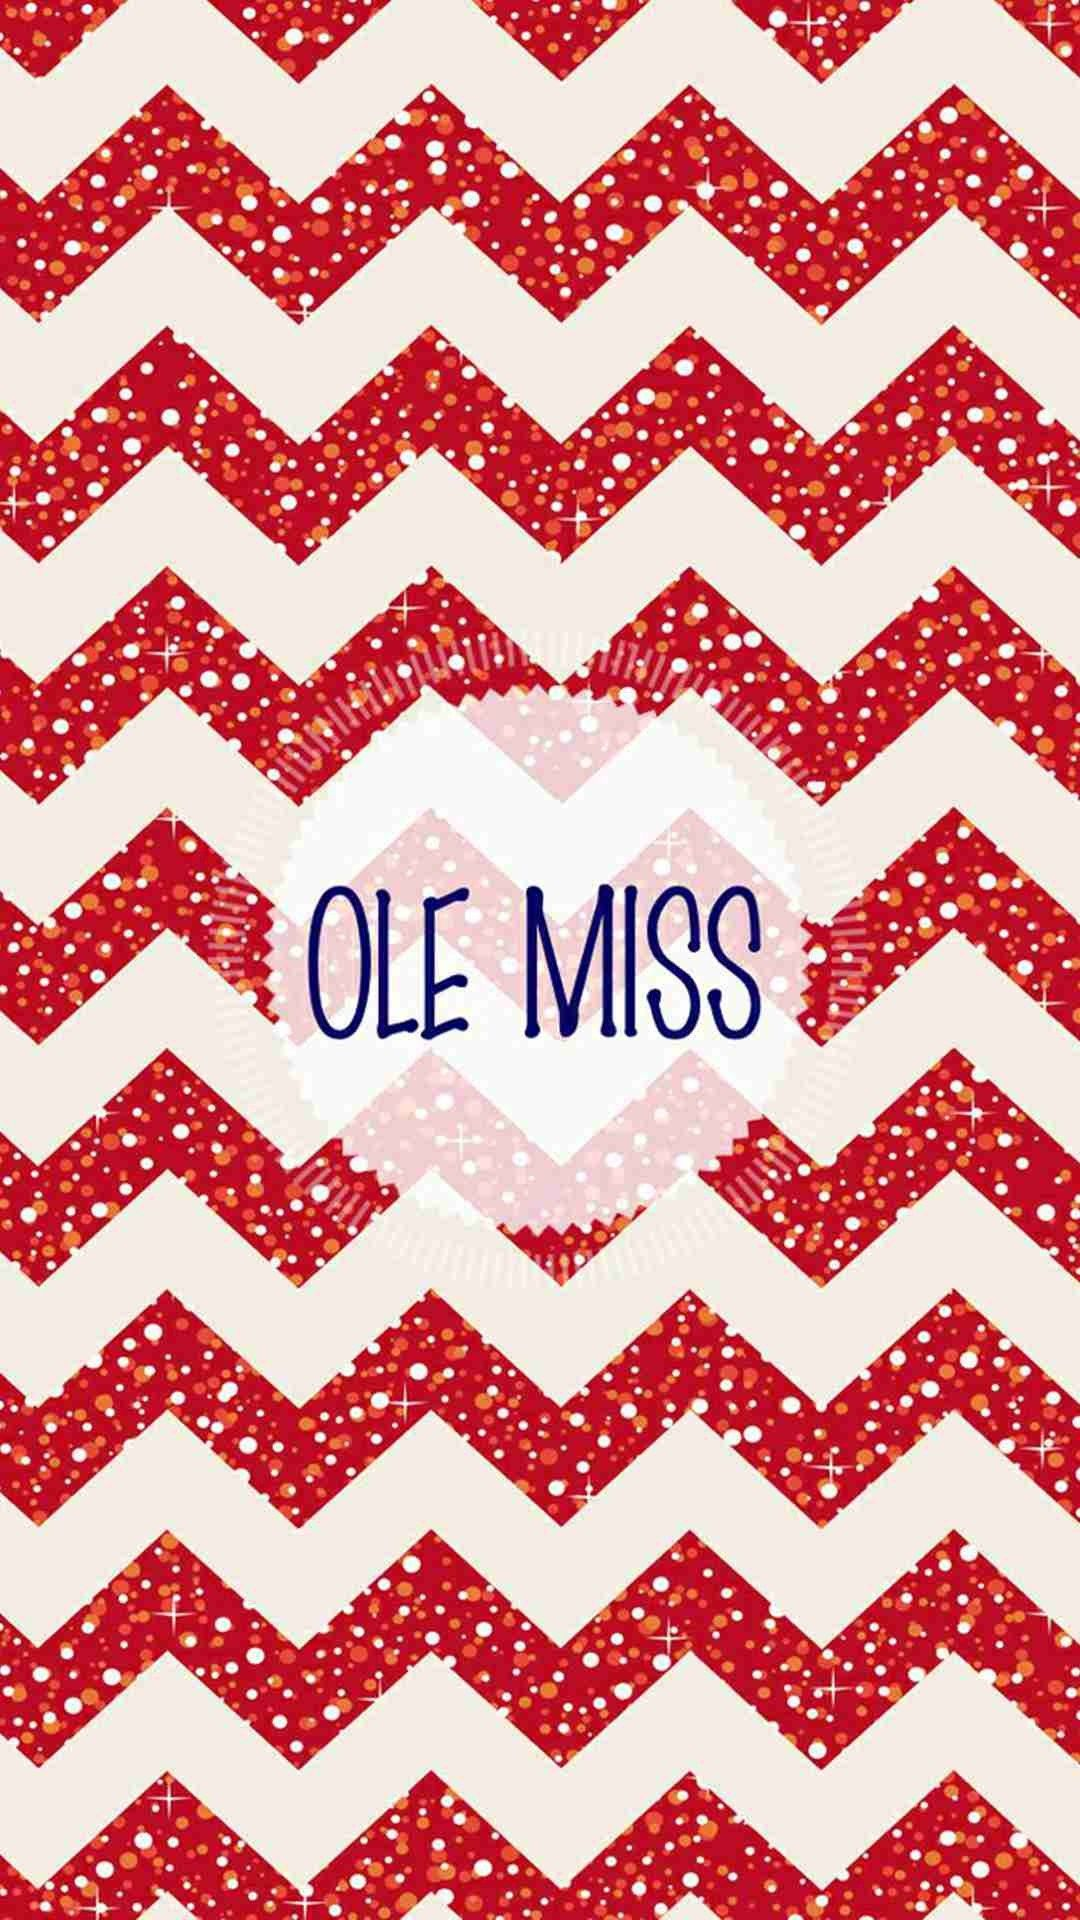 Iphone wallpapers tumblr chevron - Gilry Gliiter Red Chevron Iphone 6 Plus Wallpaper Ole Miss Zigzag Iphone